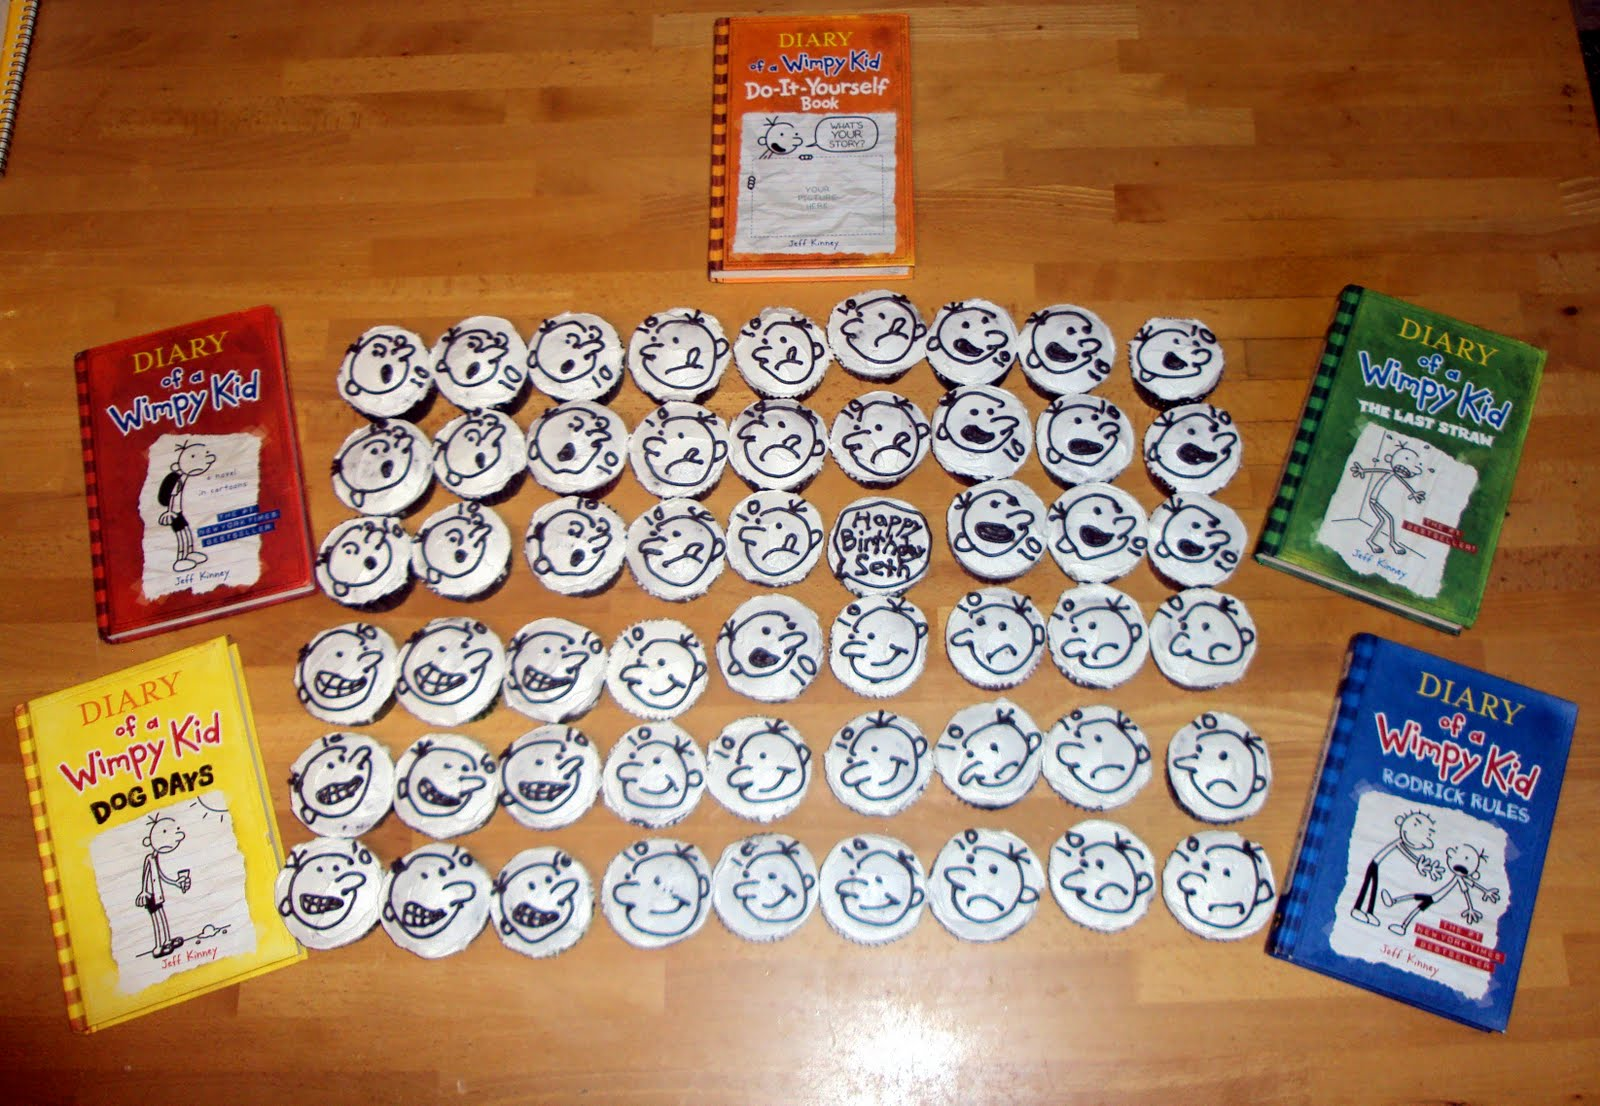 Diary of a wimpy kid cupcakes momma d and da boyz these are some of the inspiration faces alongside my renderings solutioingenieria Image collections